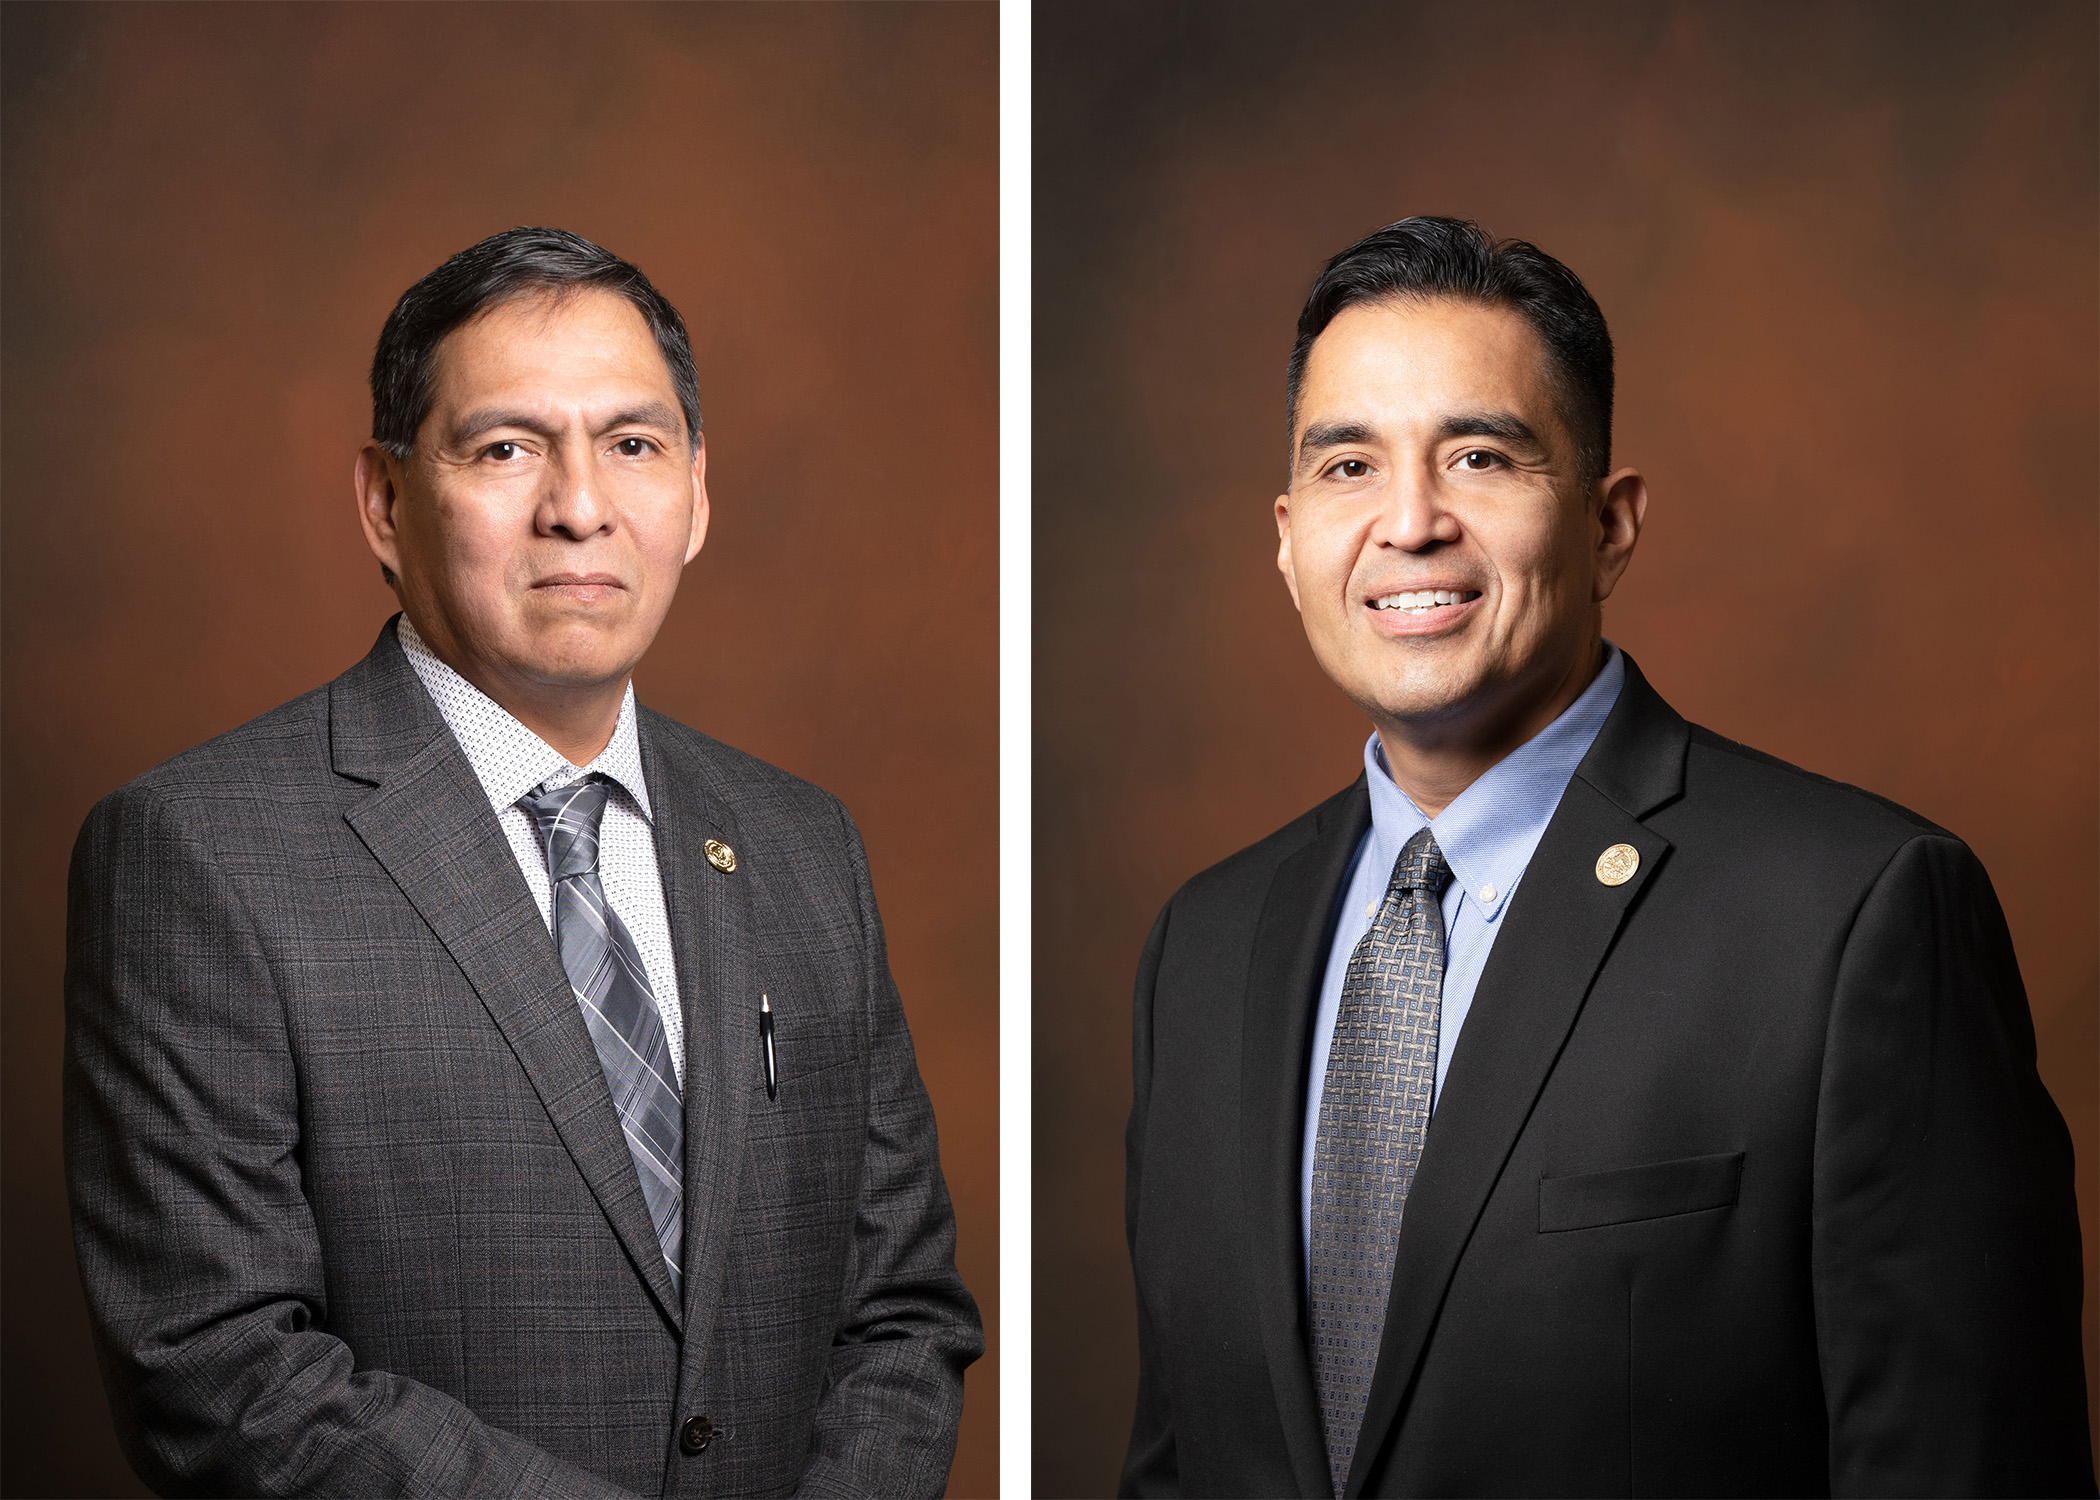 A word from Chief & Second Chief